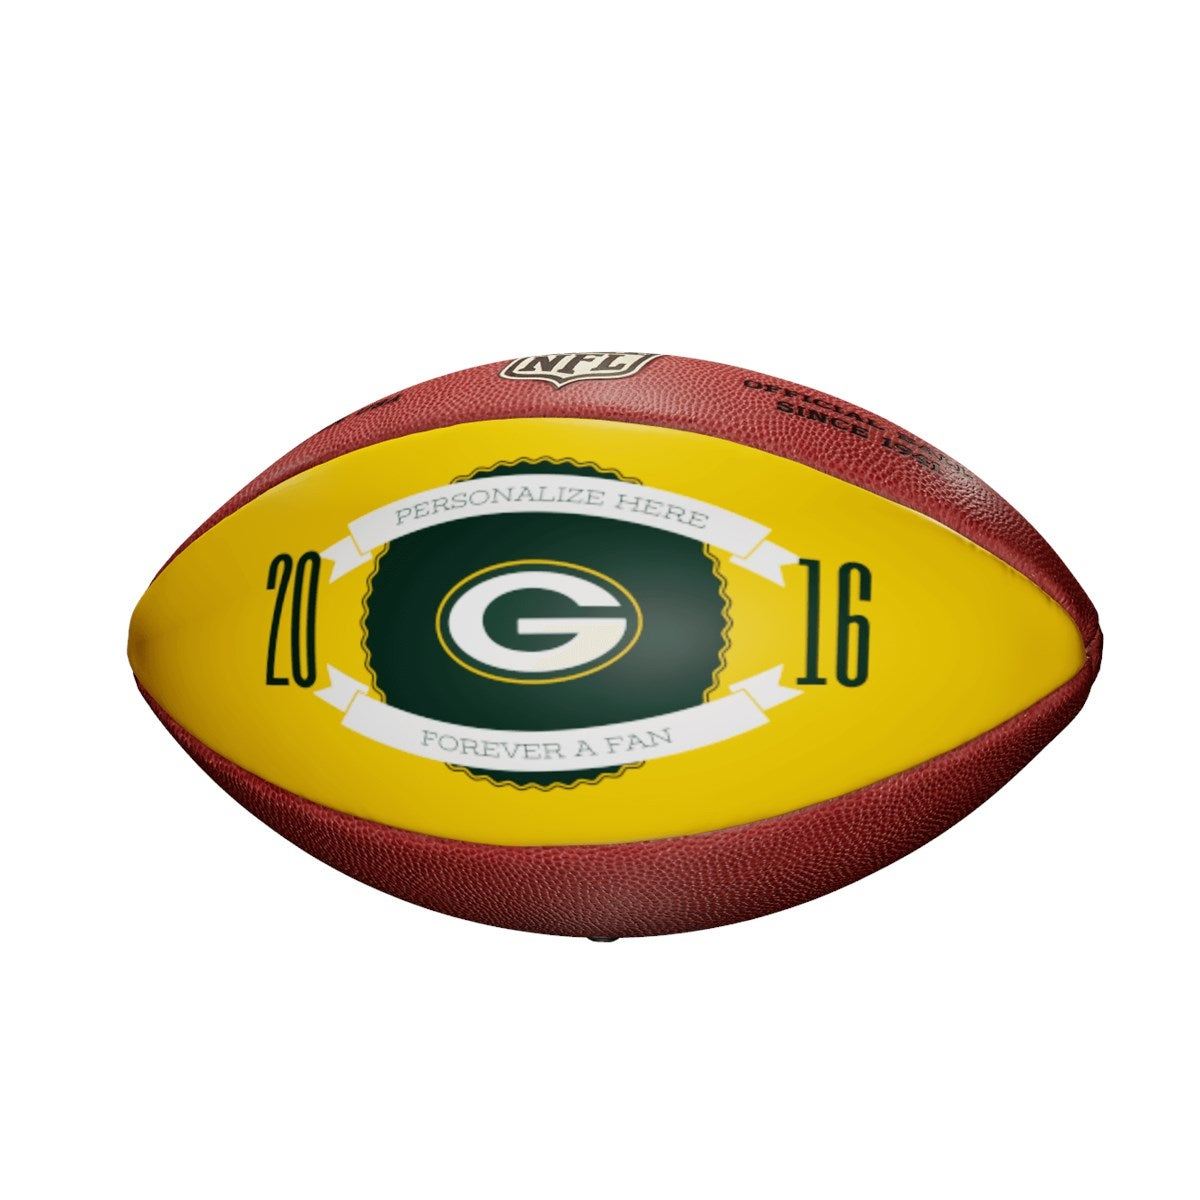 Personalized NFL Green Bay Packers Every Given Sunday Football